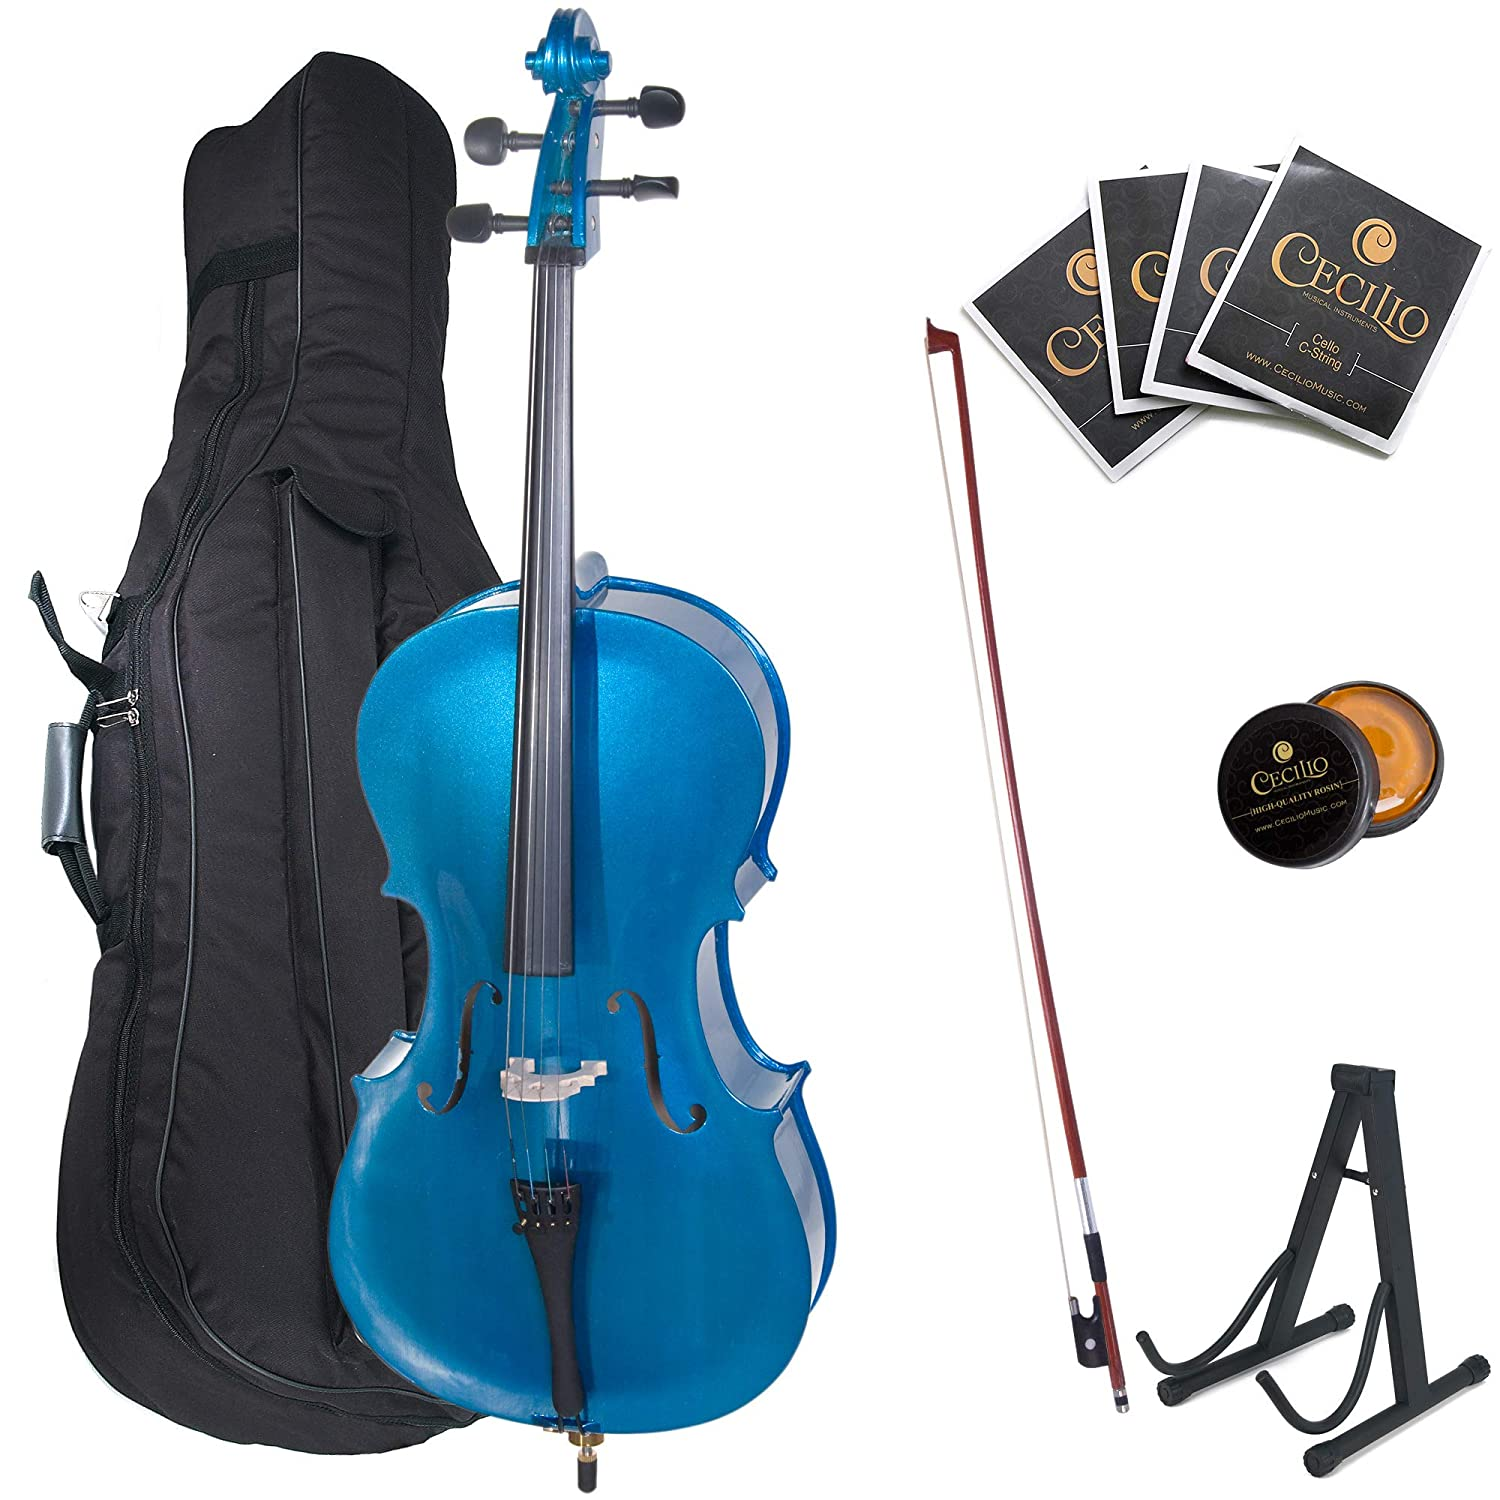 Cecilio CCO-100 Student Cello with Soft Case, Stand, Bow, Rosin, Bridge and Extra Set of Strings, Size 4/4 (Full Size) Cecilio Musical Instruments 4/4CCO-100